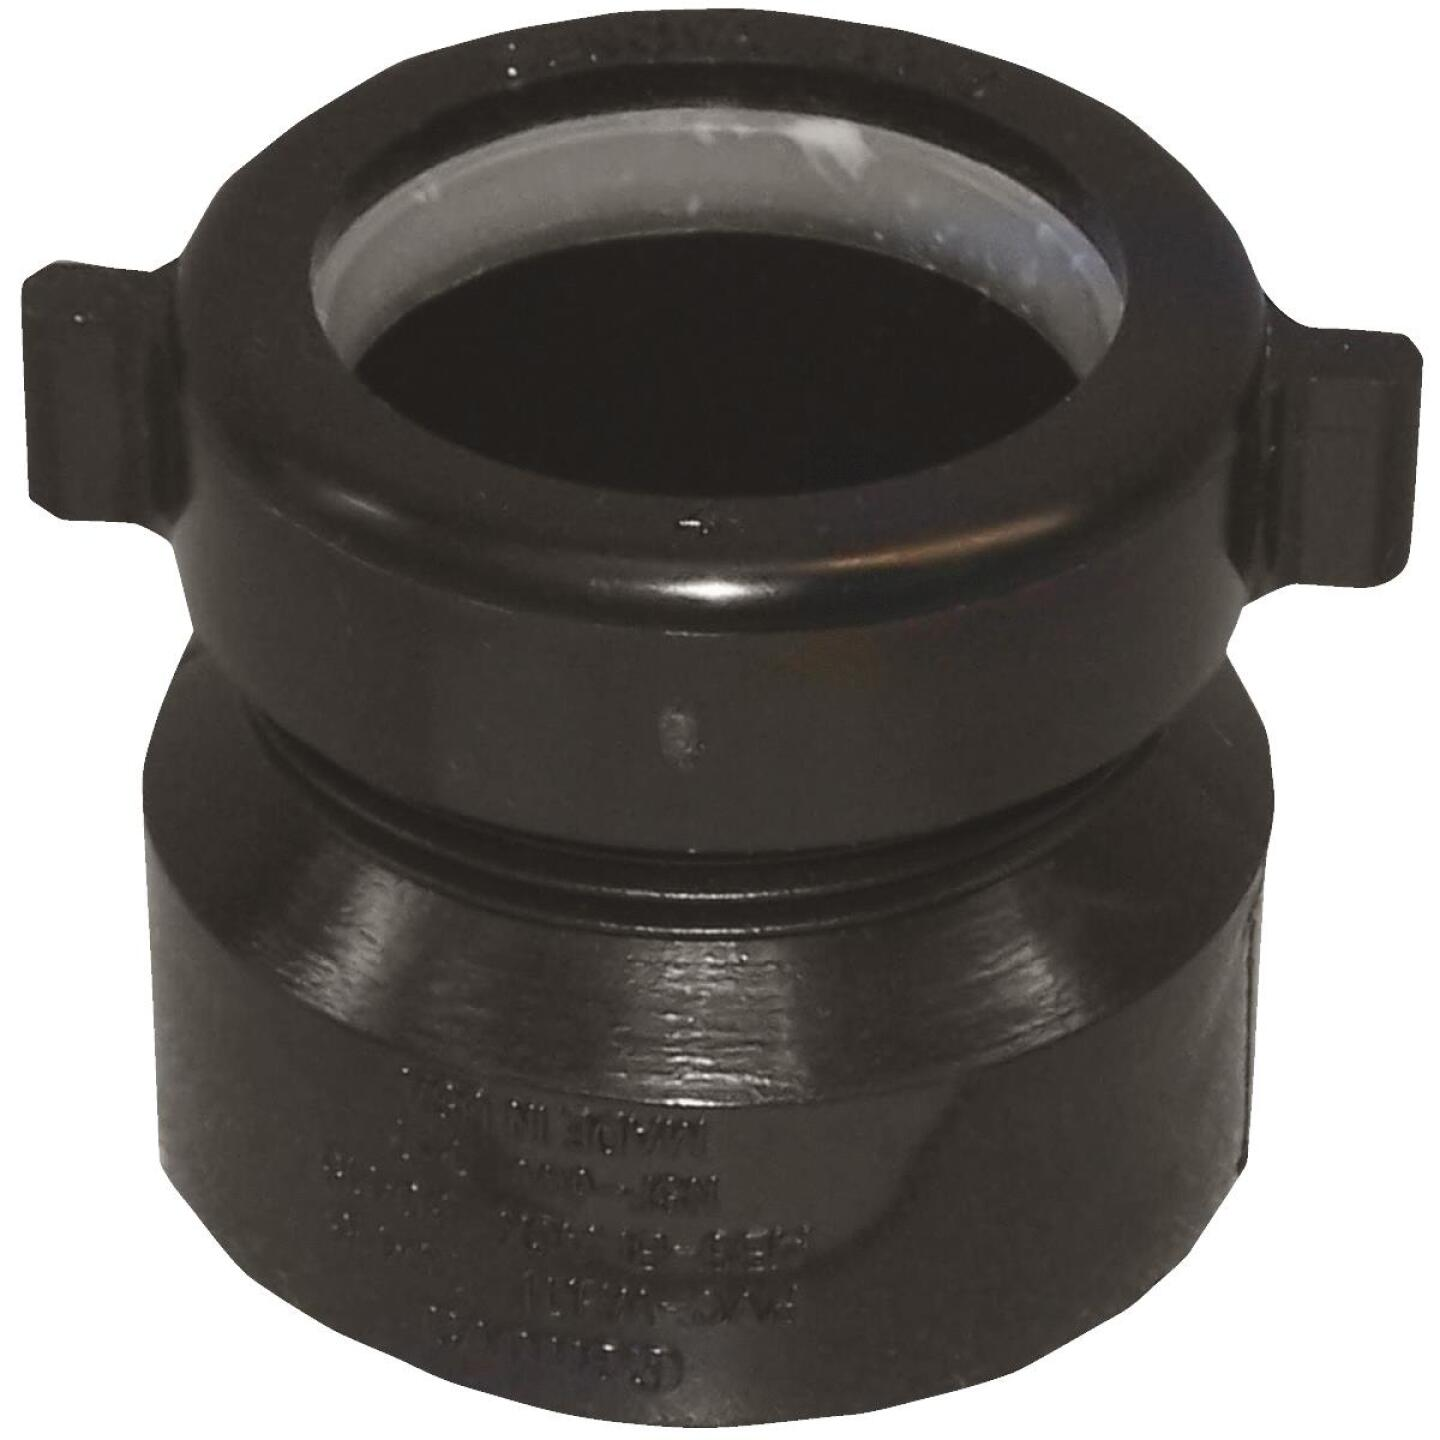 Charlotte Pipe 1-1/2 In. x 1-1/2 In. or 1-1/4 In. HUB x Tubular Black ABS Waste Adapter Image 1